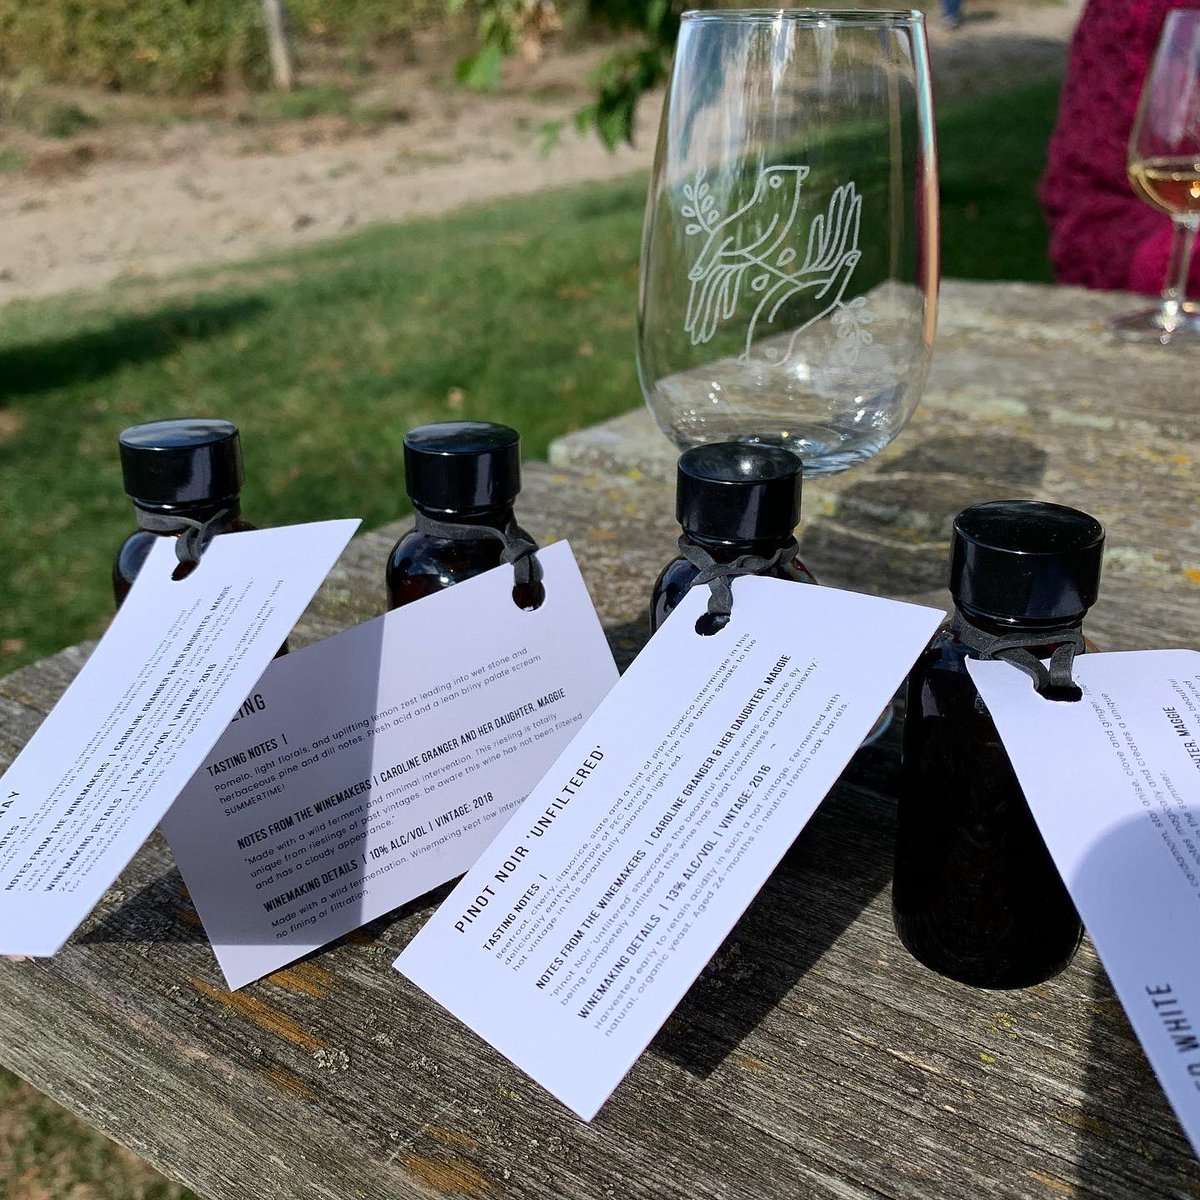 test Twitter Media - In Prince Edward County for the weekend and how cute is this little wine sampling kit from @grangewinery? A perfect way to sample outside or at home safely. https://t.co/Jd22xSZSyn